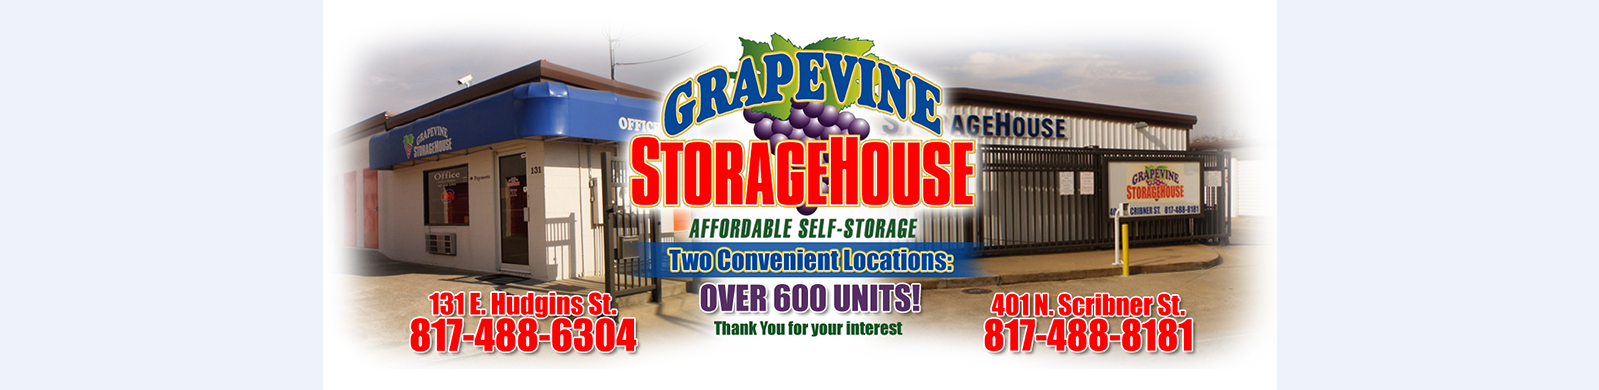 Grapevine StorageHouse reviews | Self Storage at 131 E Hudgins St - Grapevine TX